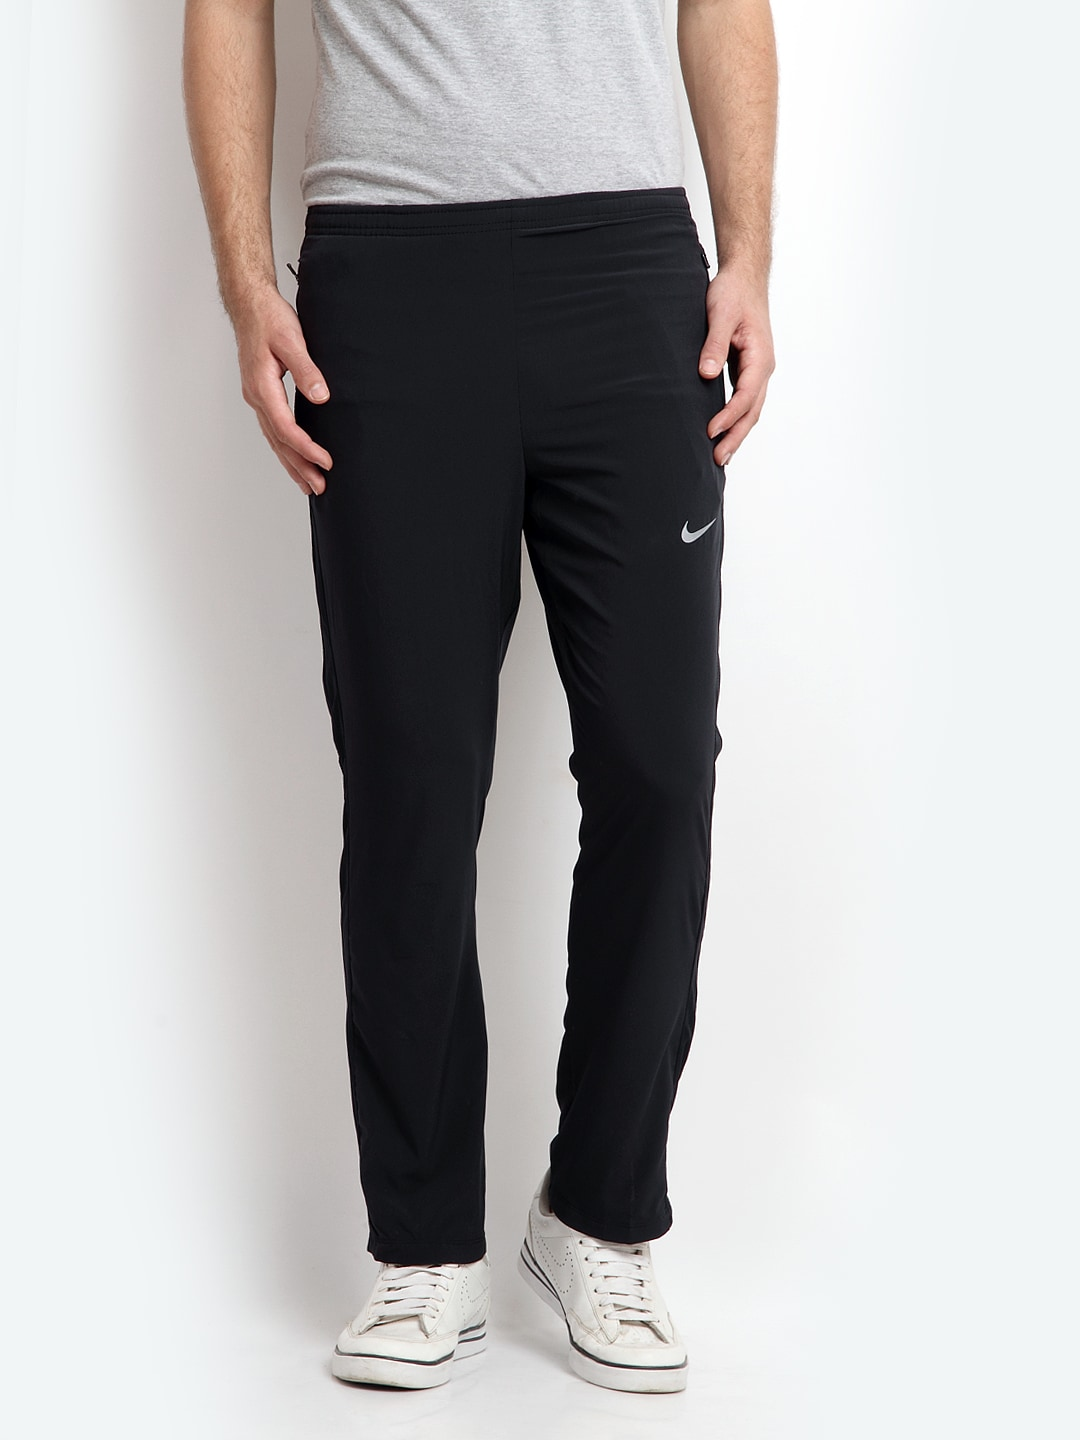 Beautiful Buy Nike Black Jersey NSW Track Pants  293  Apparel For Women